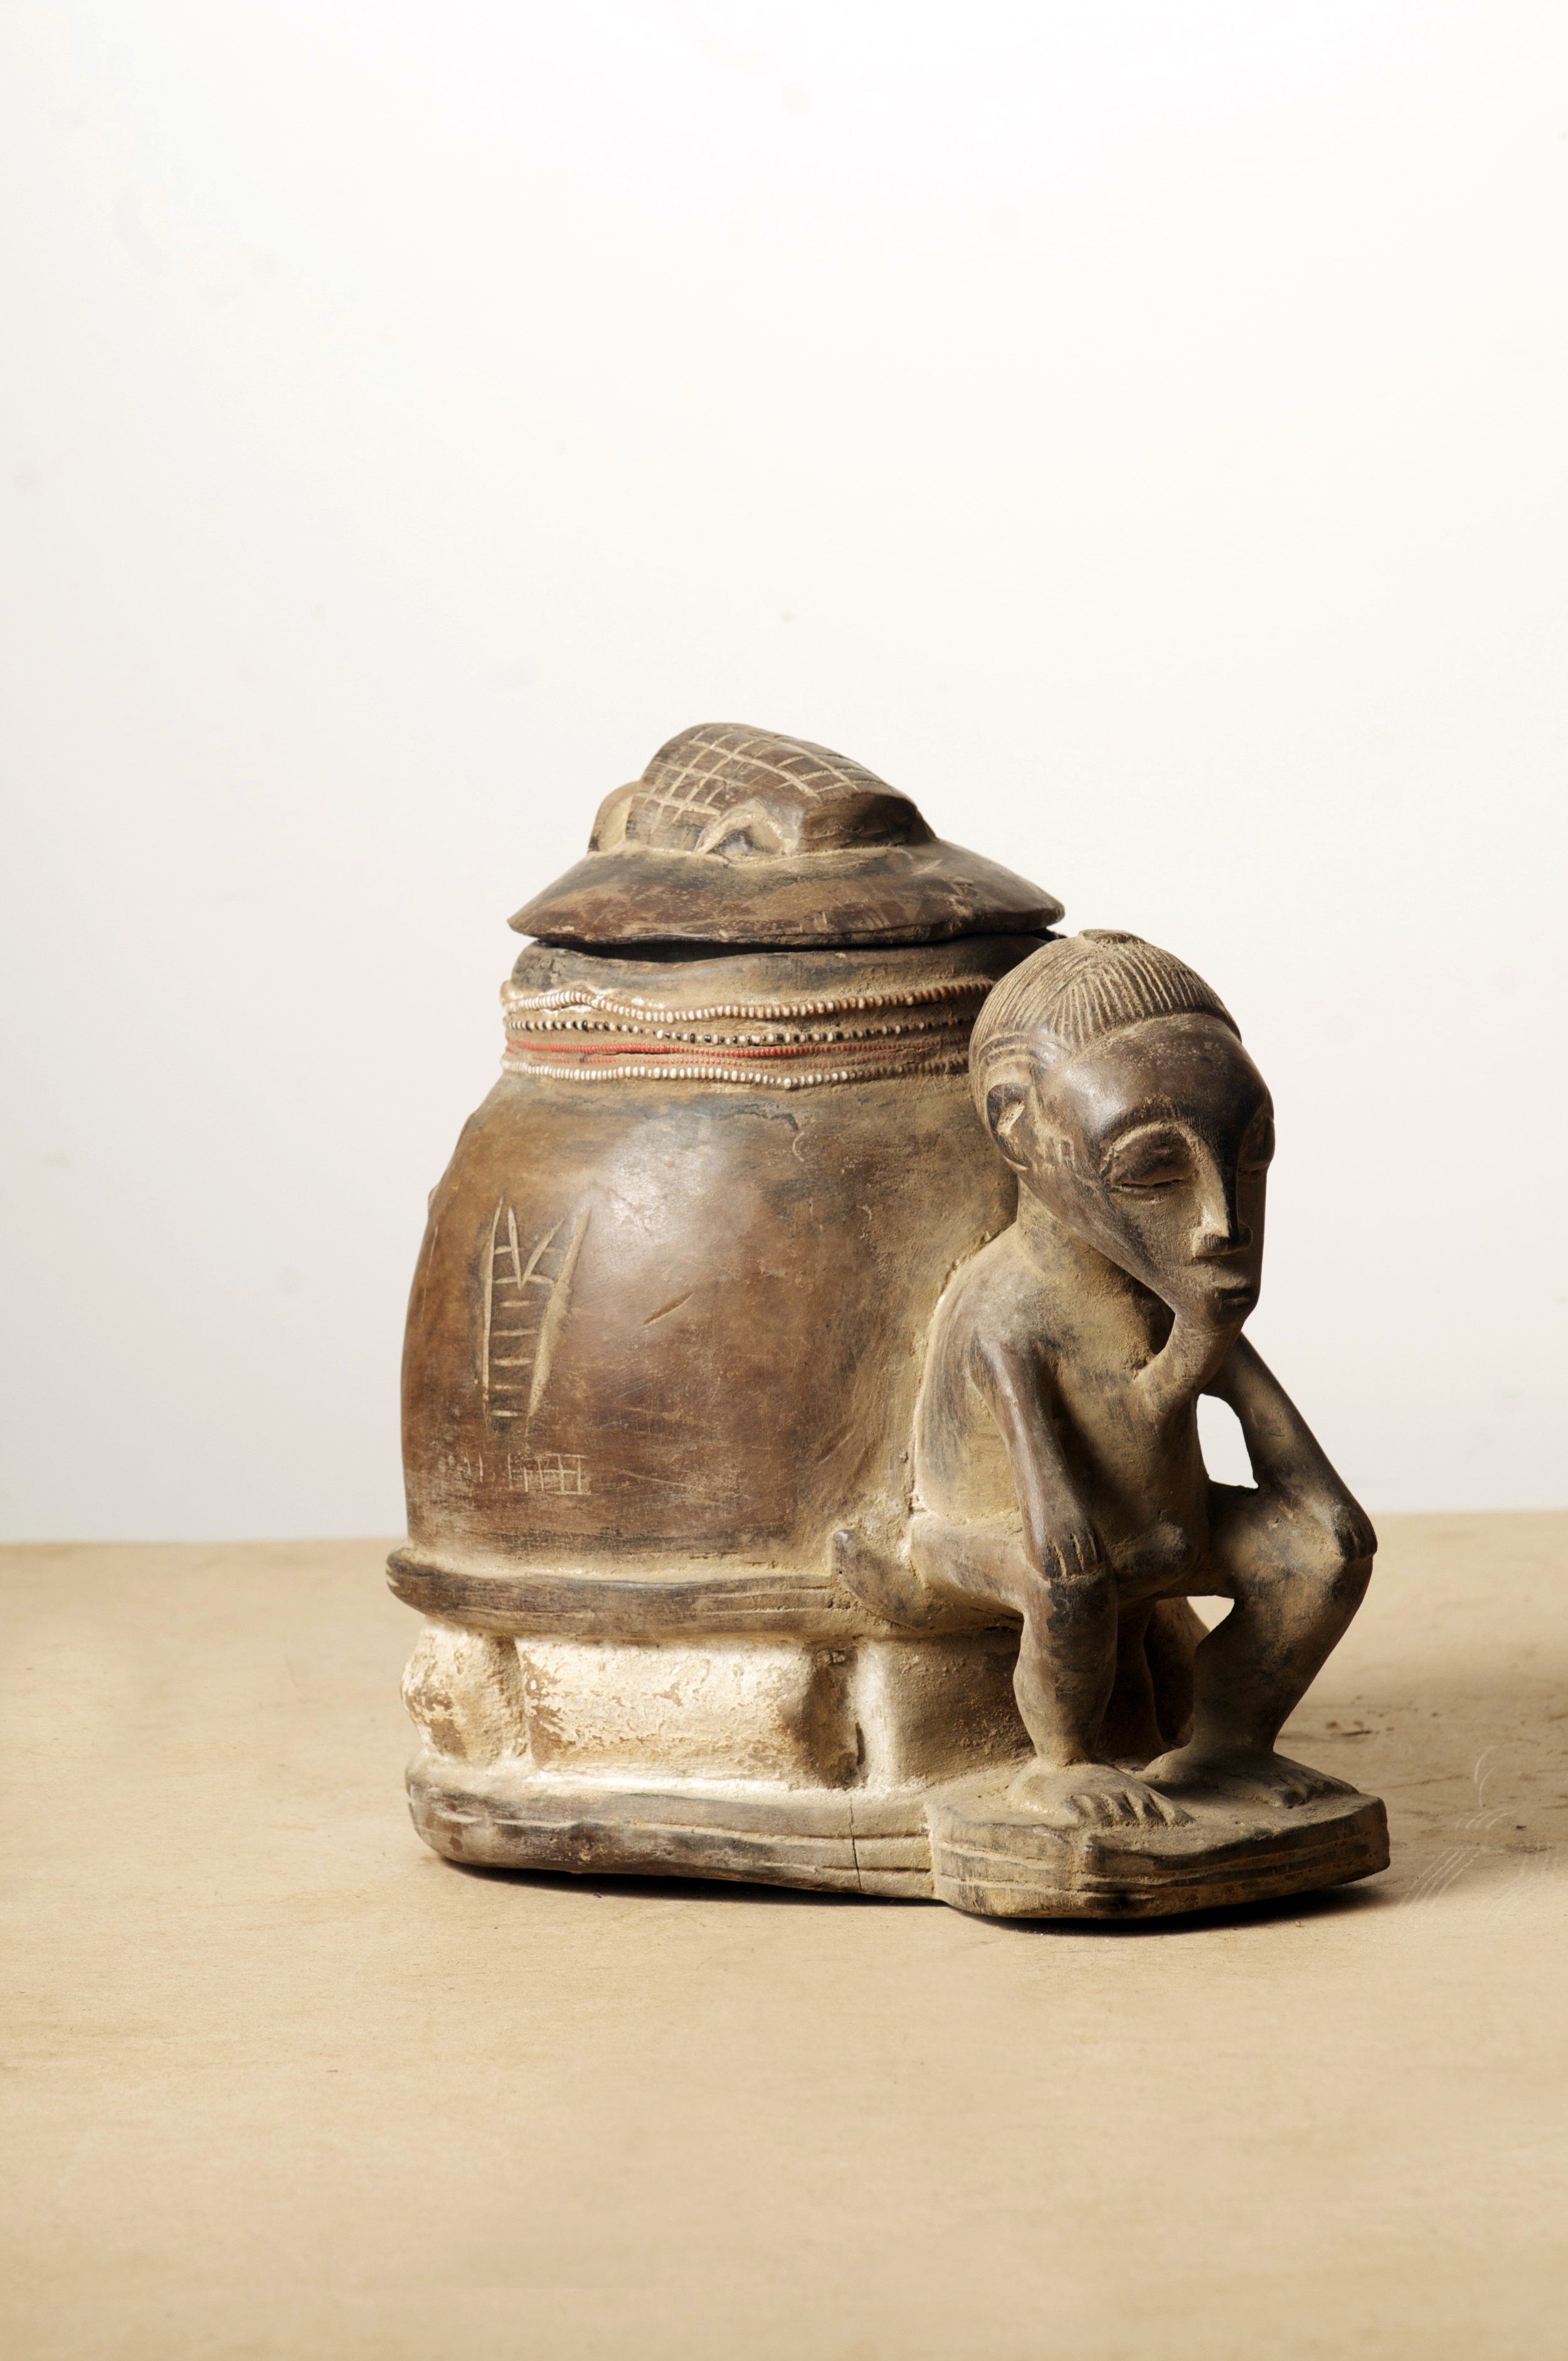 Baule Pot with a man. Cote D'ivoire. Height 15.4 inch.Pp. $350.00.jpg